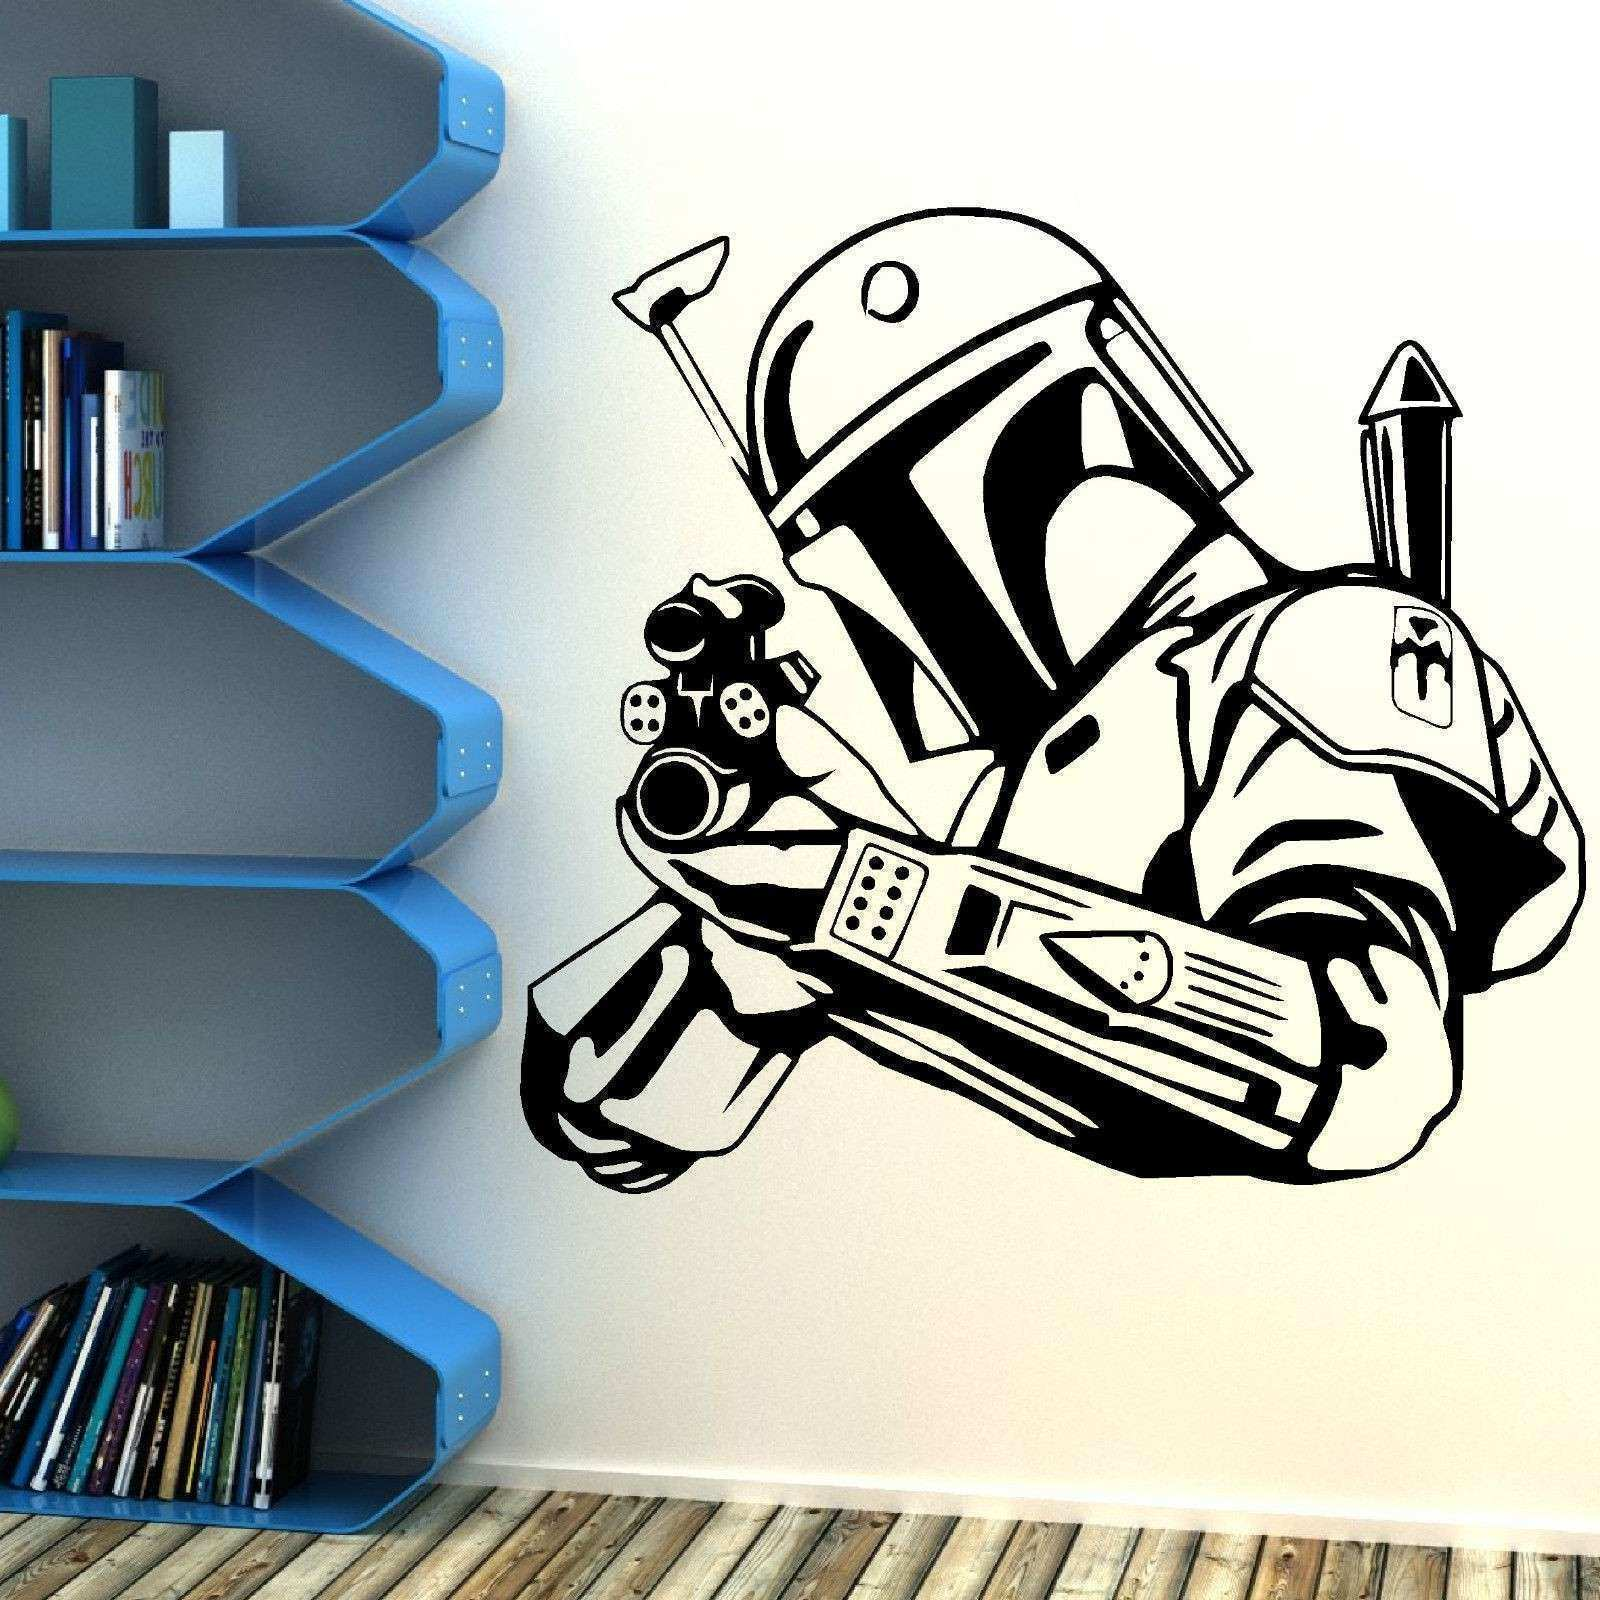 STAR WARS BOBBA FETT BOUNTY HUNTER vinyl wall art sticker